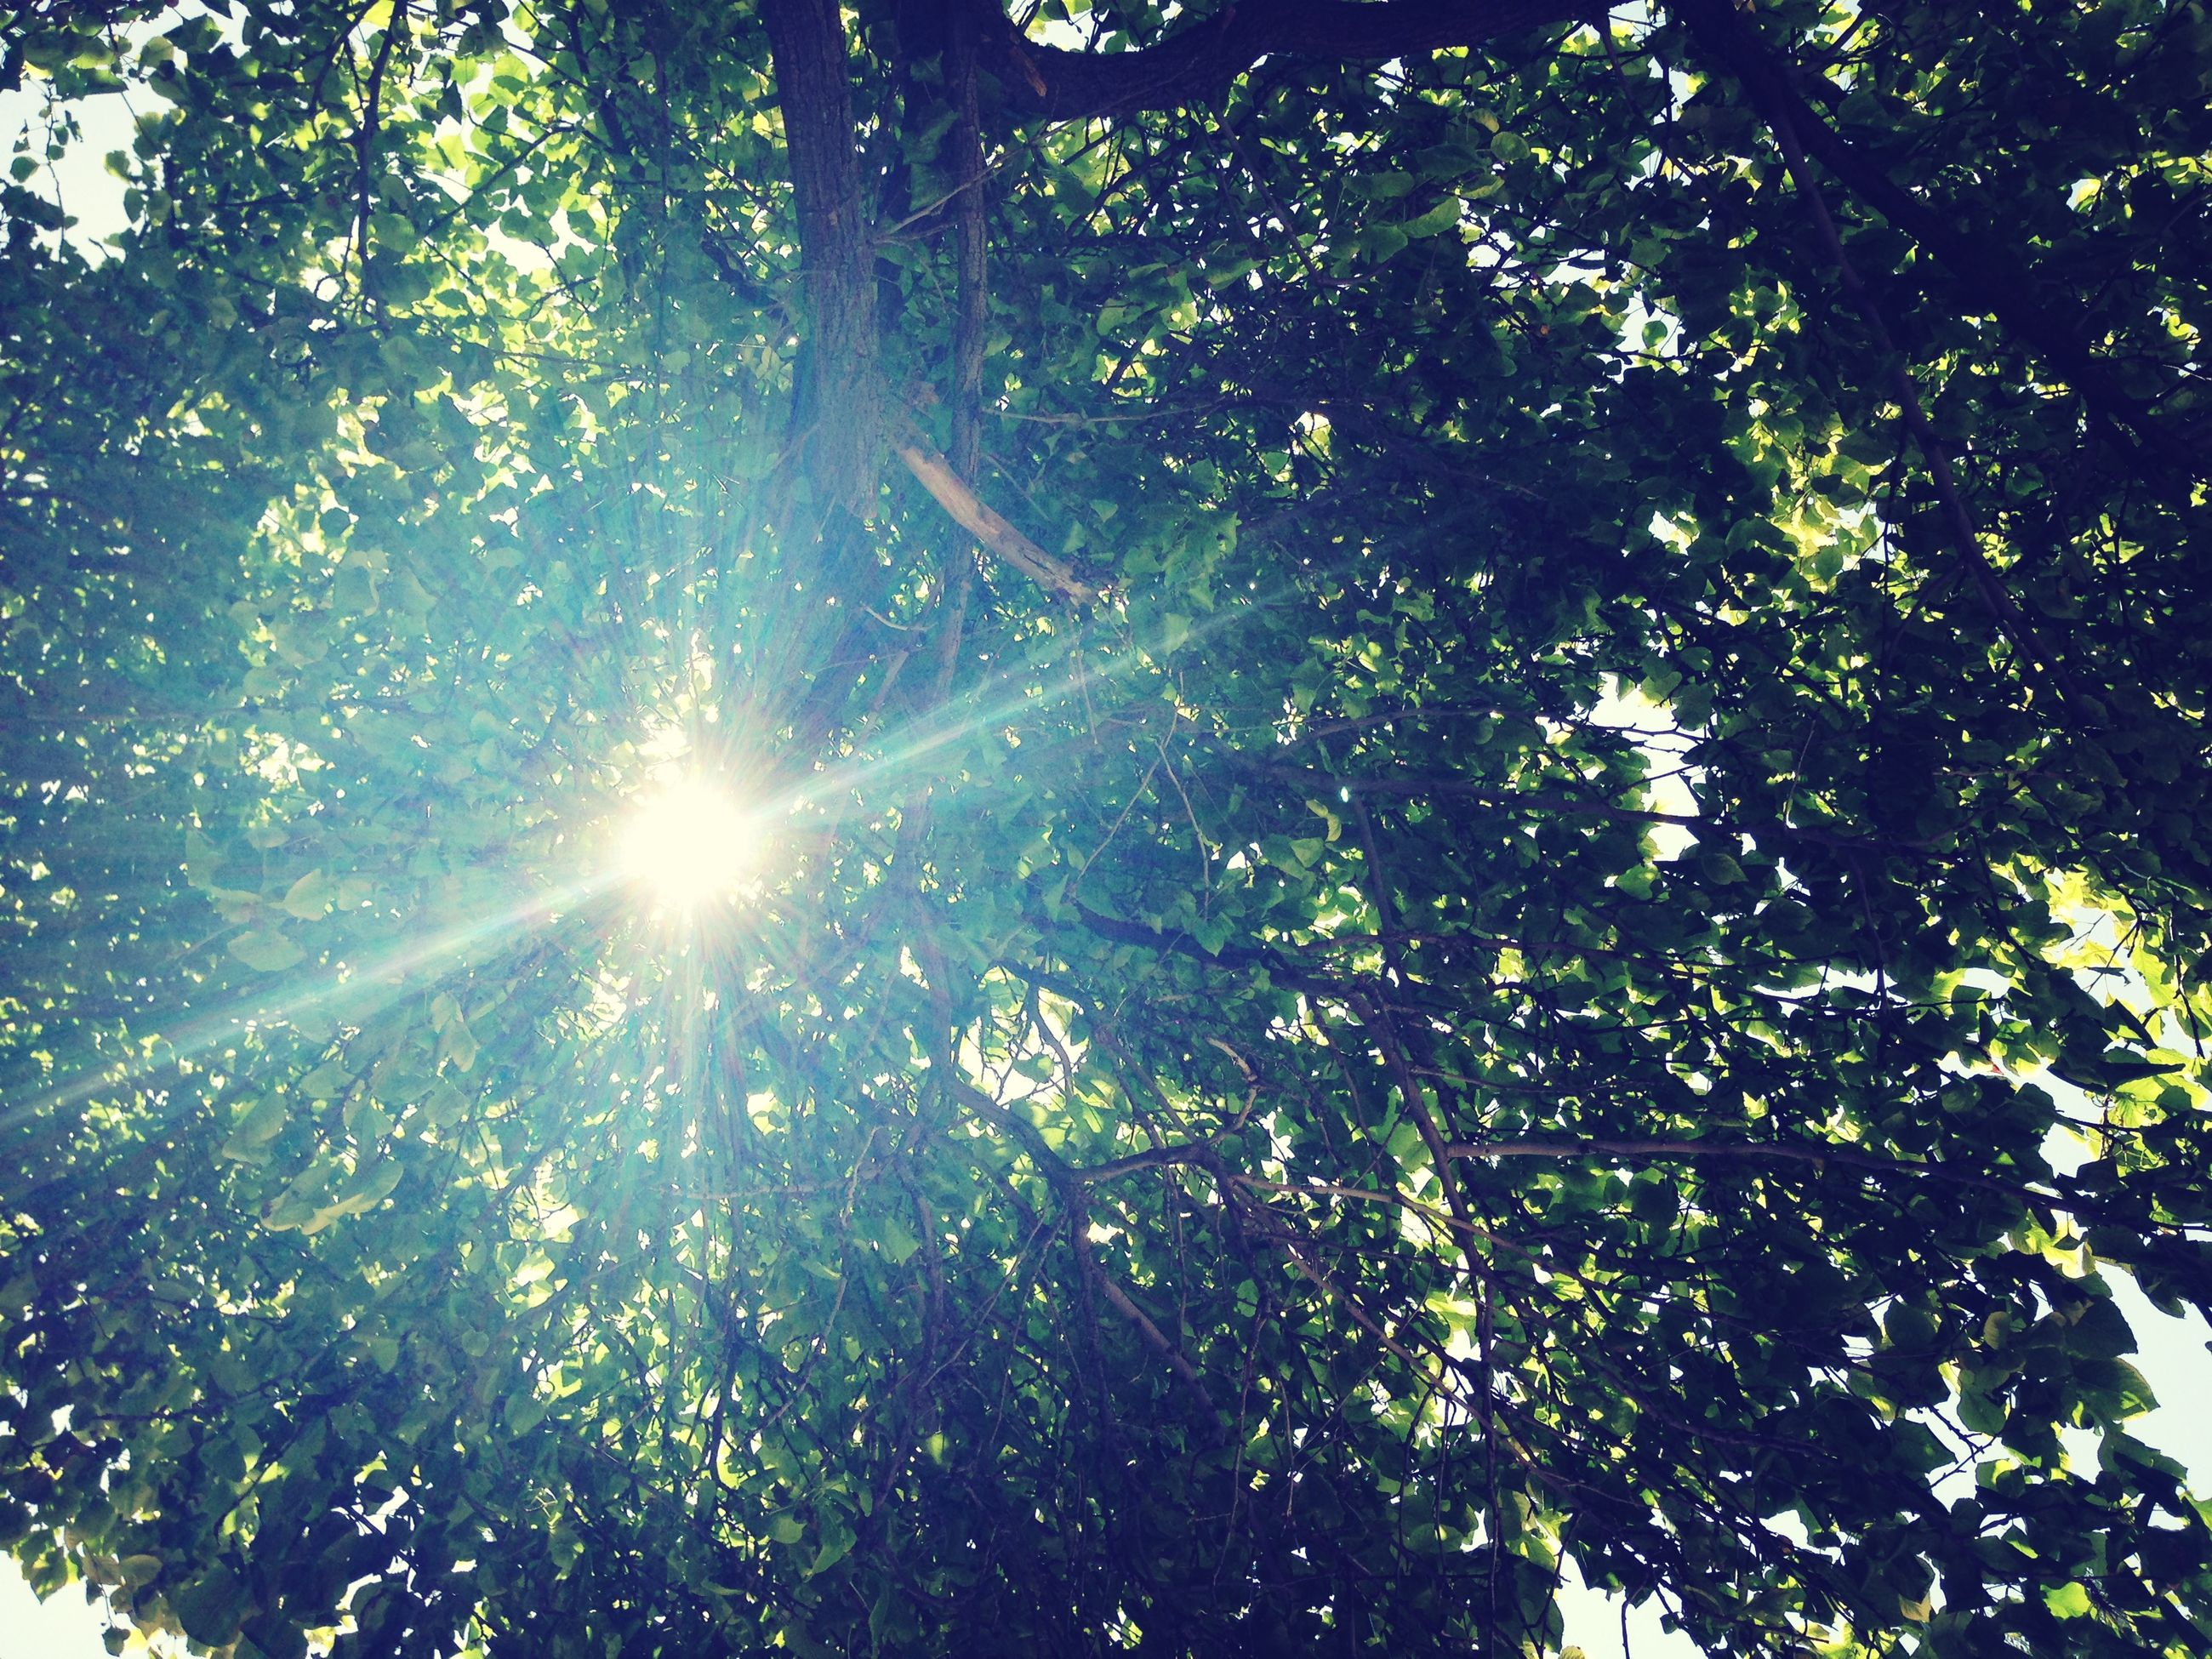 tree, low angle view, sun, growth, sunlight, sunbeam, tranquility, lens flare, nature, beauty in nature, branch, green color, sunny, scenics, tranquil scene, day, sky, bright, outdoors, no people